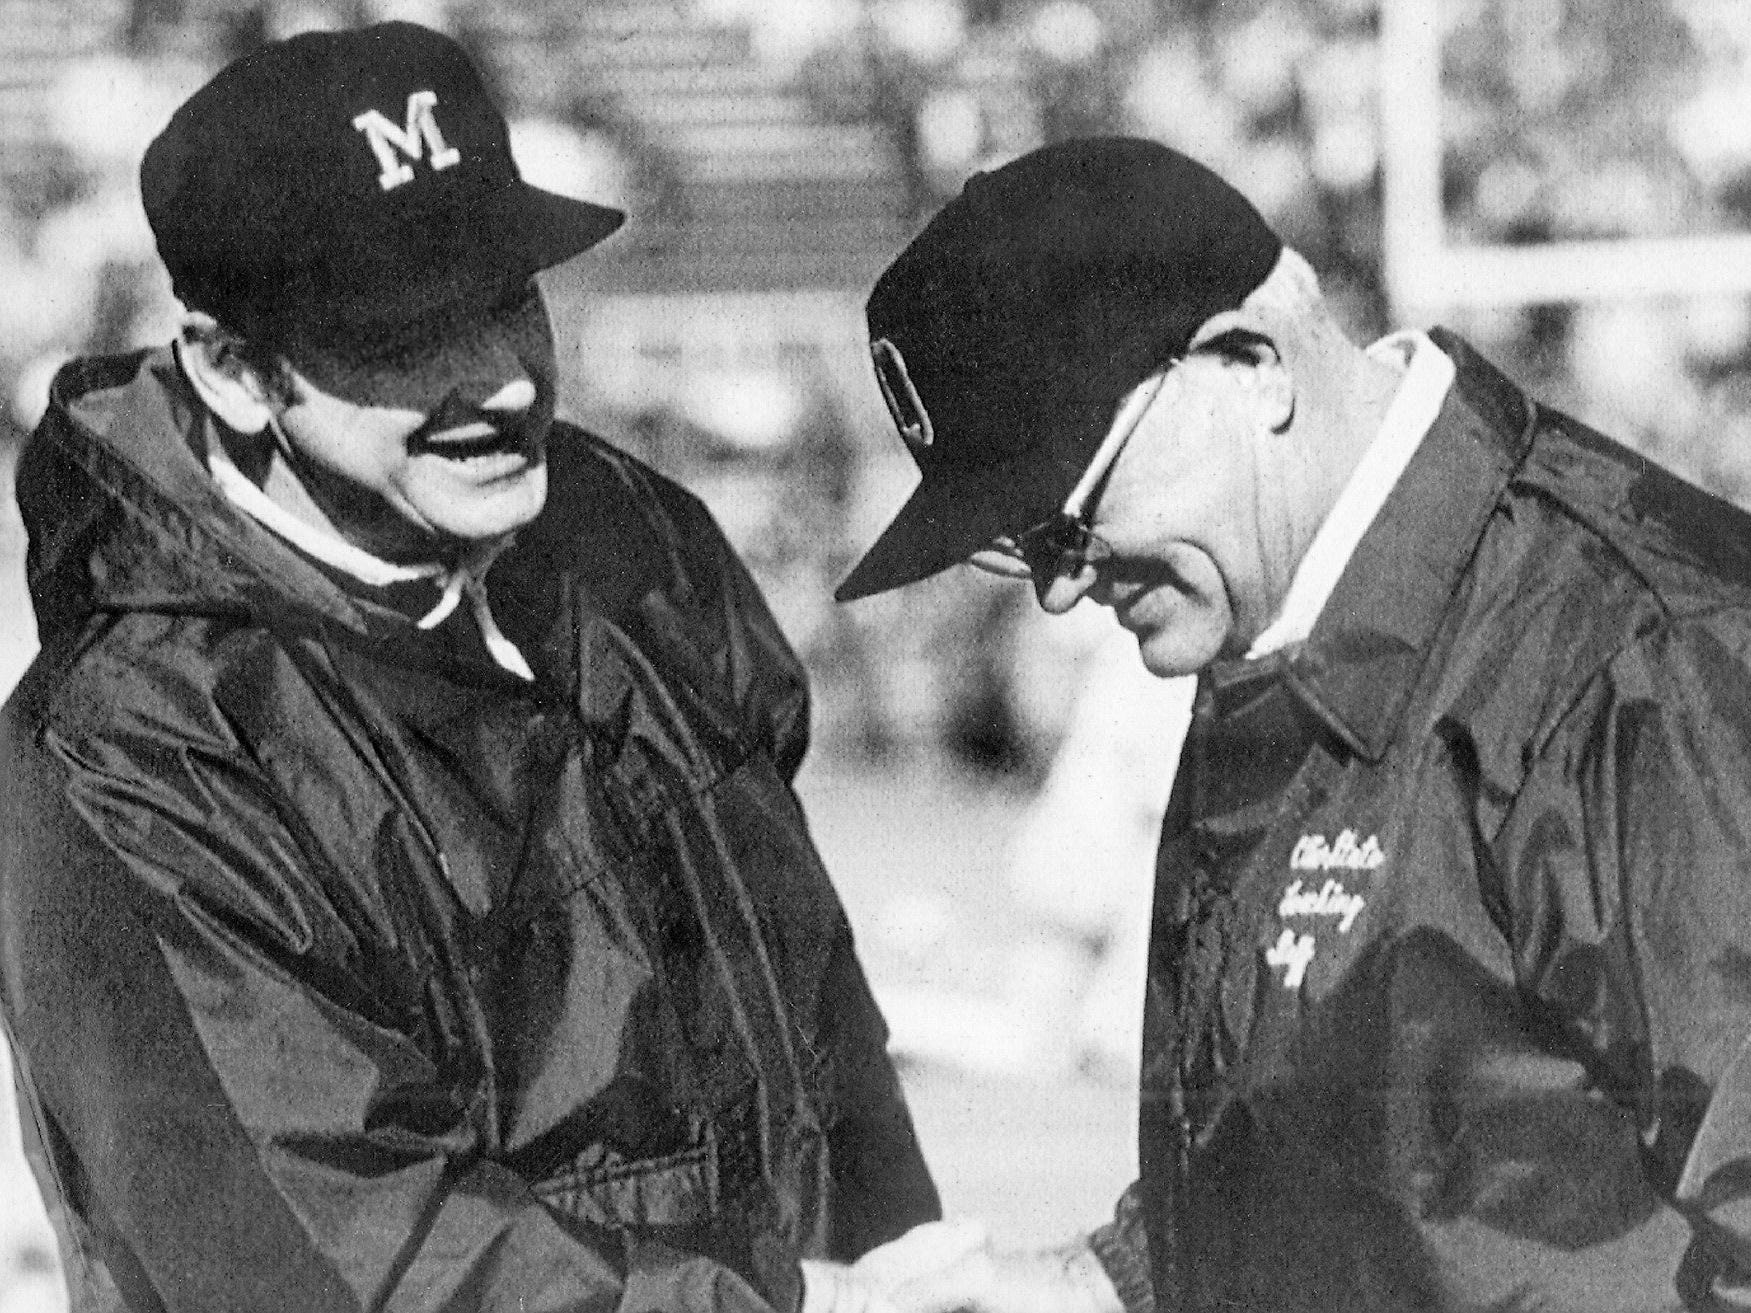 MICHIGAN-OHIO STATE: This is one of the top rivalries in all of sports, obviously. The ultimate turf war. Bo and Woody. And on and on. Michigan leads the all-time series, 58-49-6, though Ohio State has won the last six meetings, and 13 of the last 14.